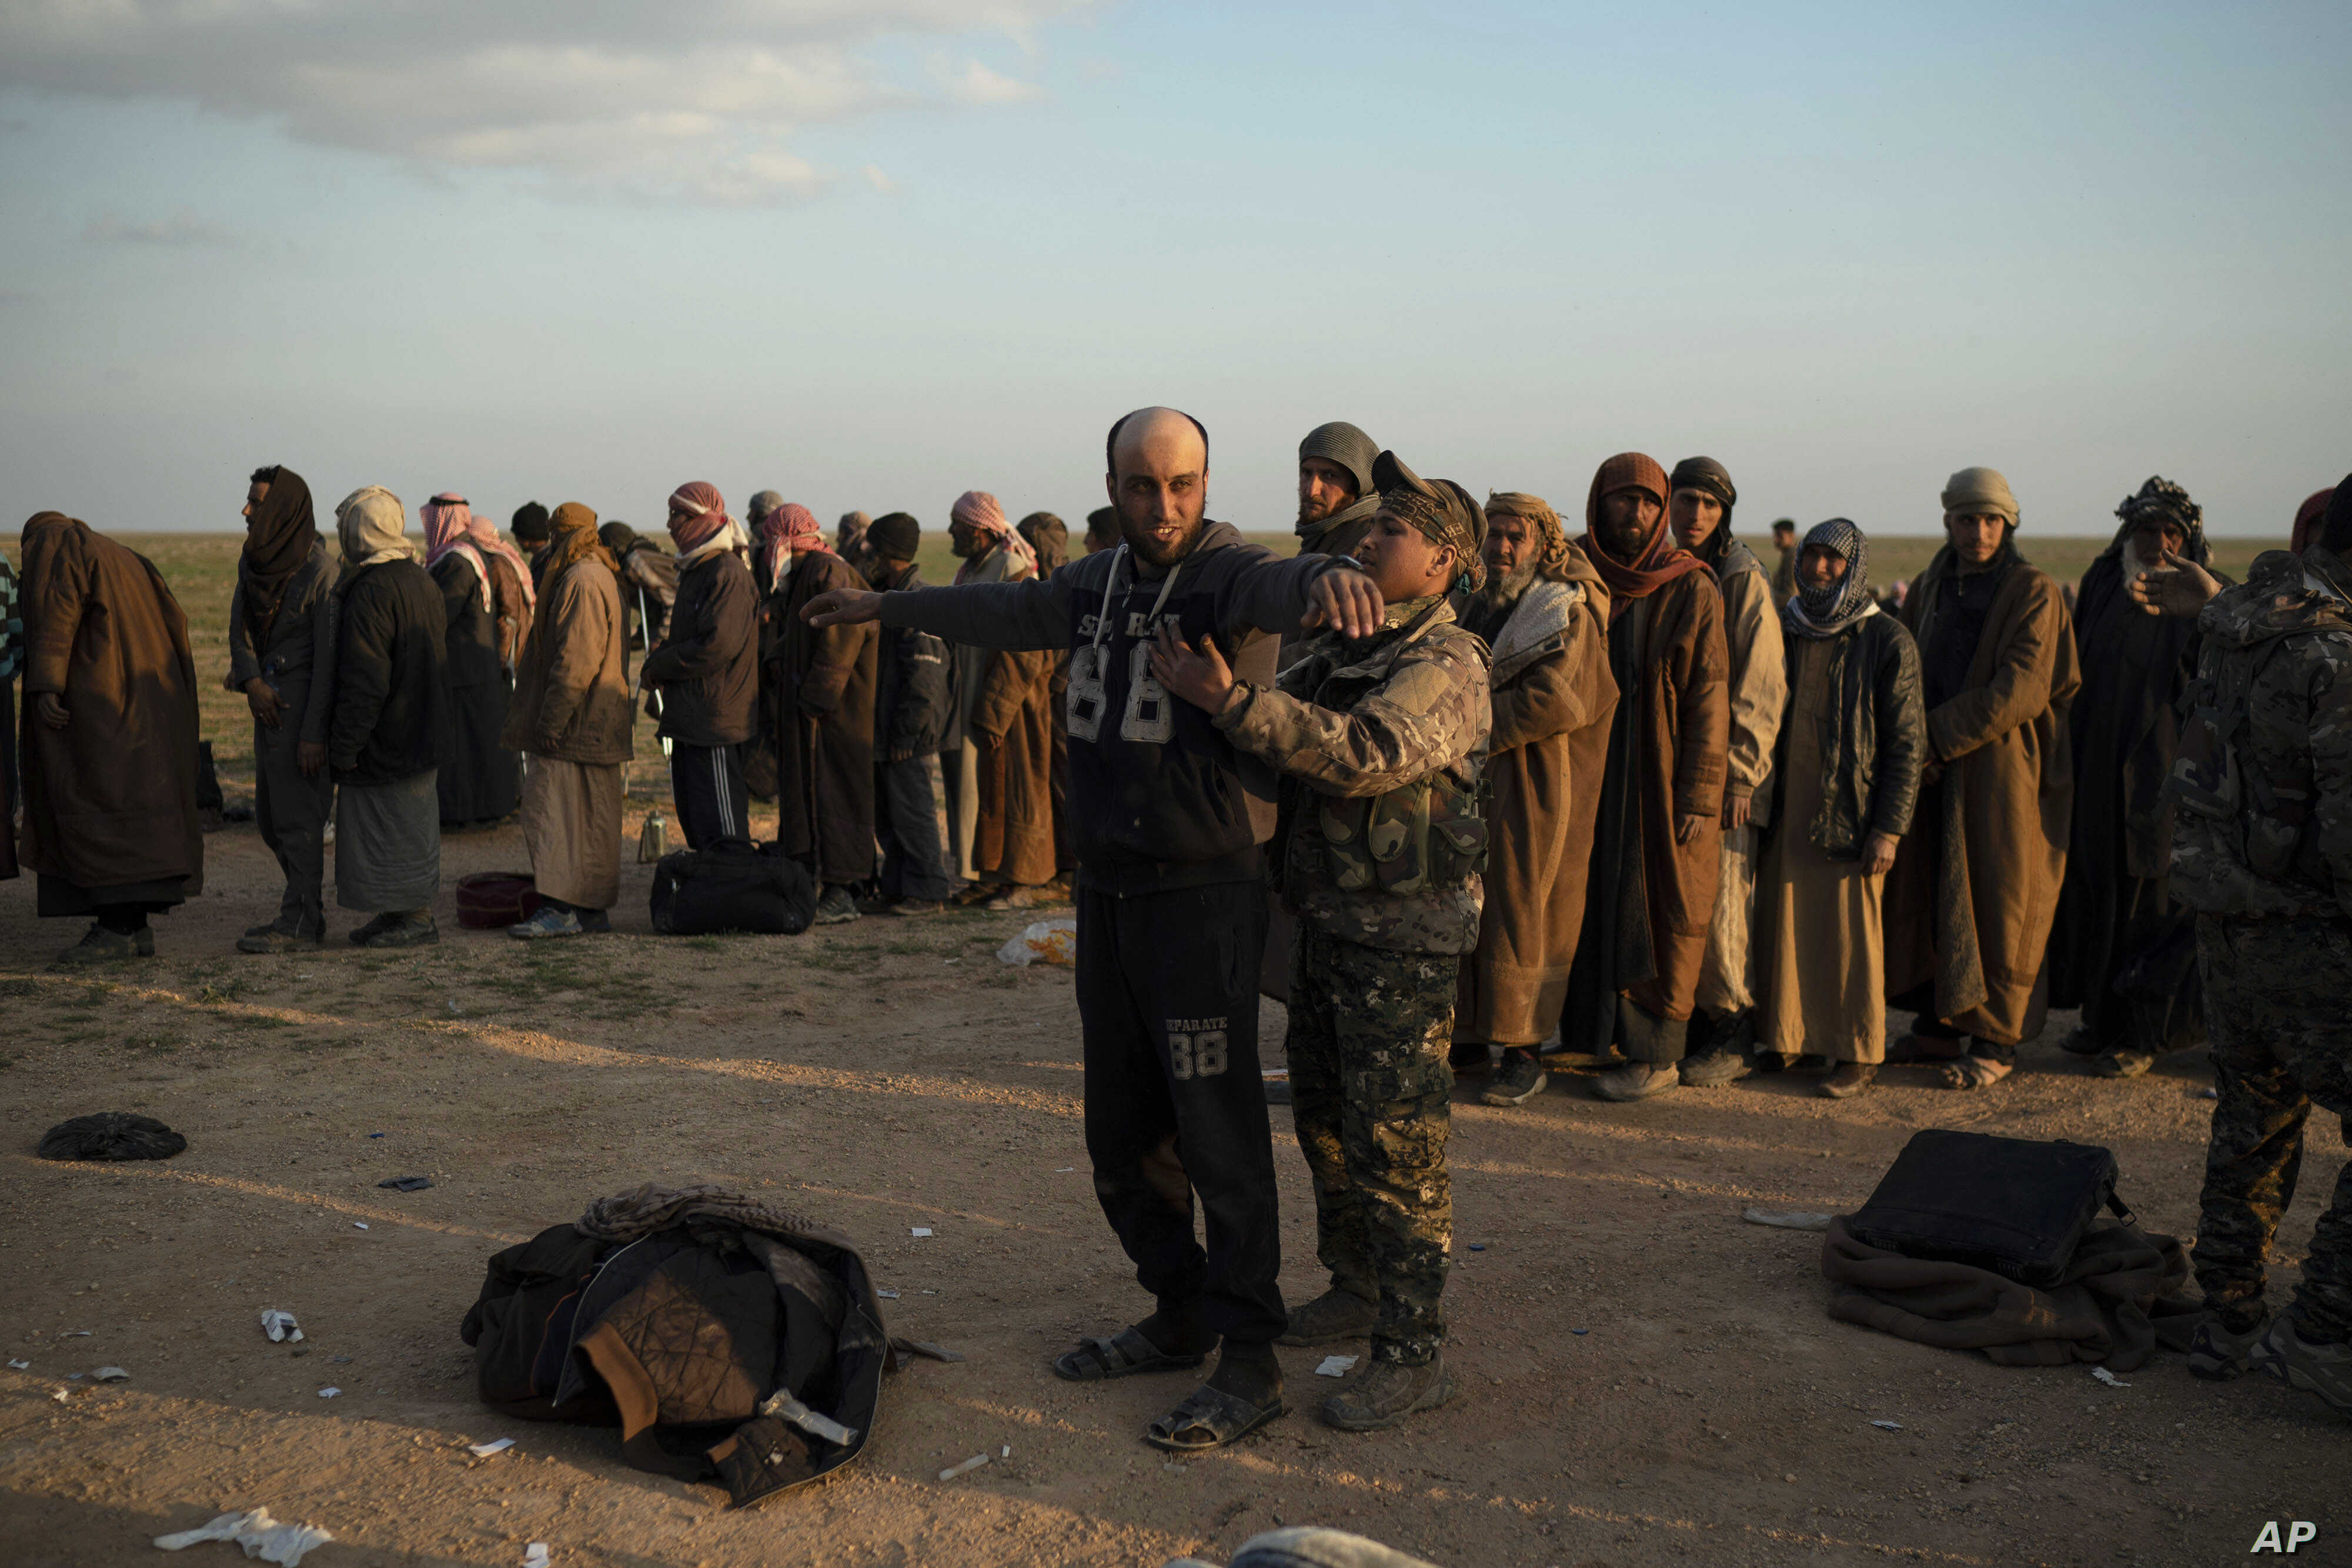 FILE - In this Feb. 22, 2019, file photo, a man is frisked by a U.S.-backed Syrian Democratic Forces fighter after being evacuated out of the last territory held by Islamic State militants, near Baghuz, eastern Syria.